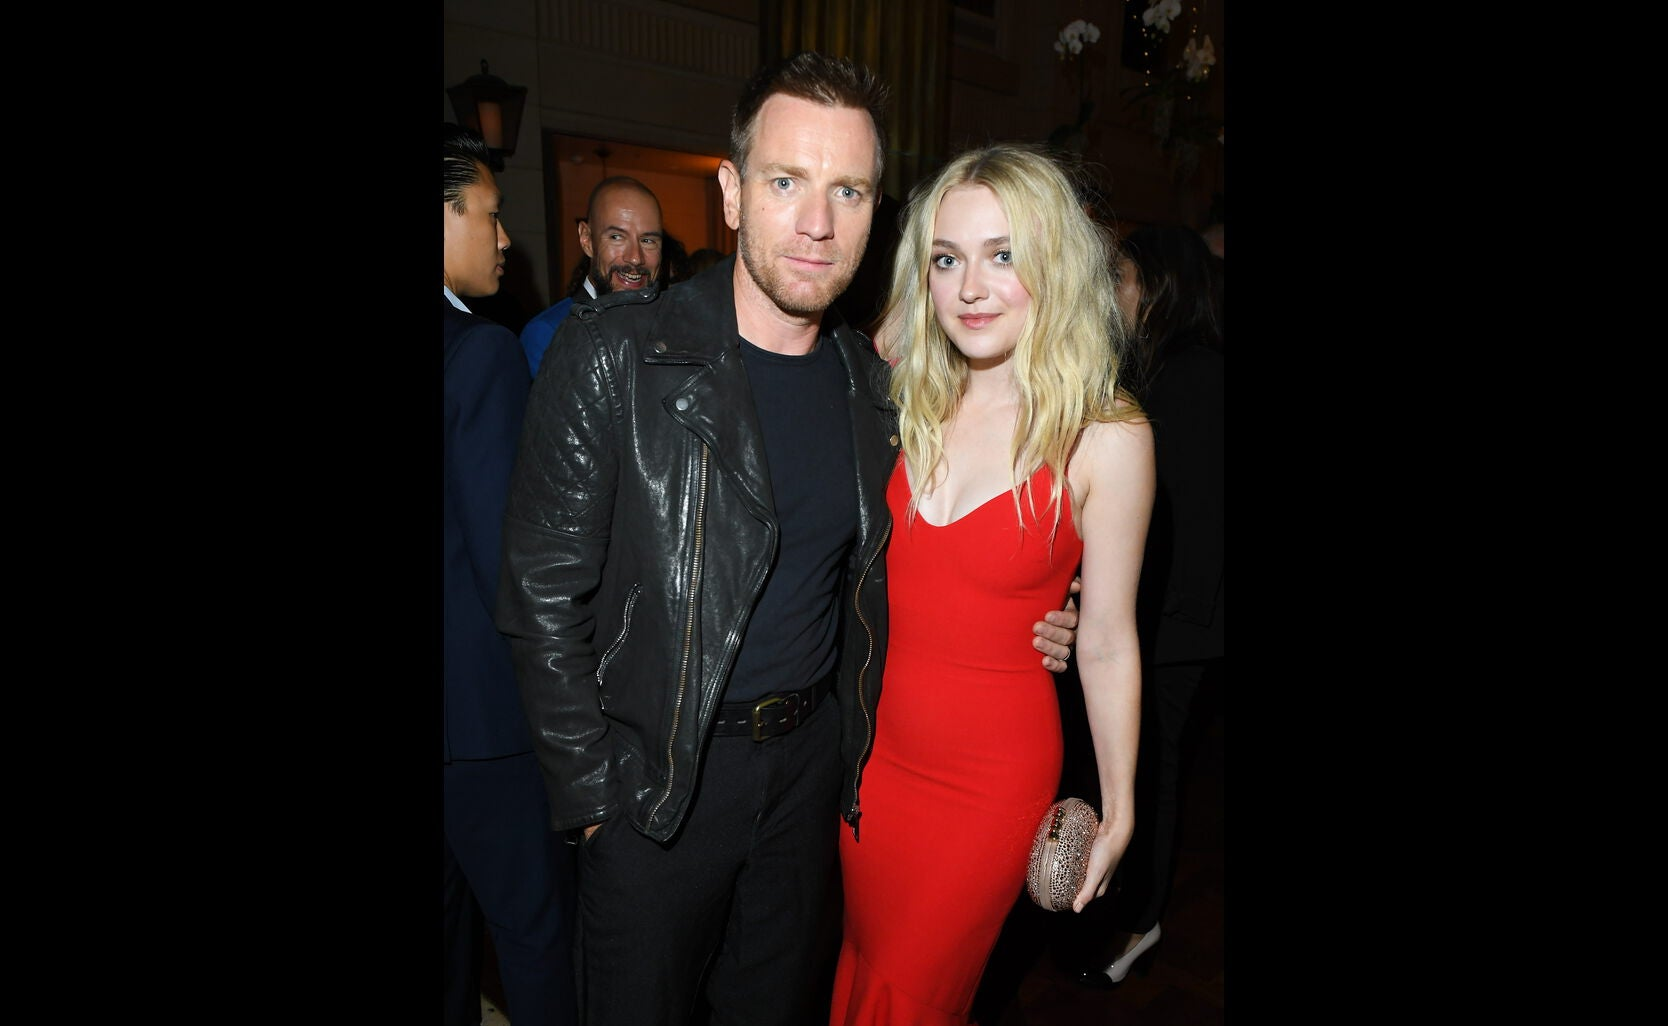 Golden Globe nominee Ewan McGregor and Dakota Fanning at the HFPA/InStyle party, Toronto 2016